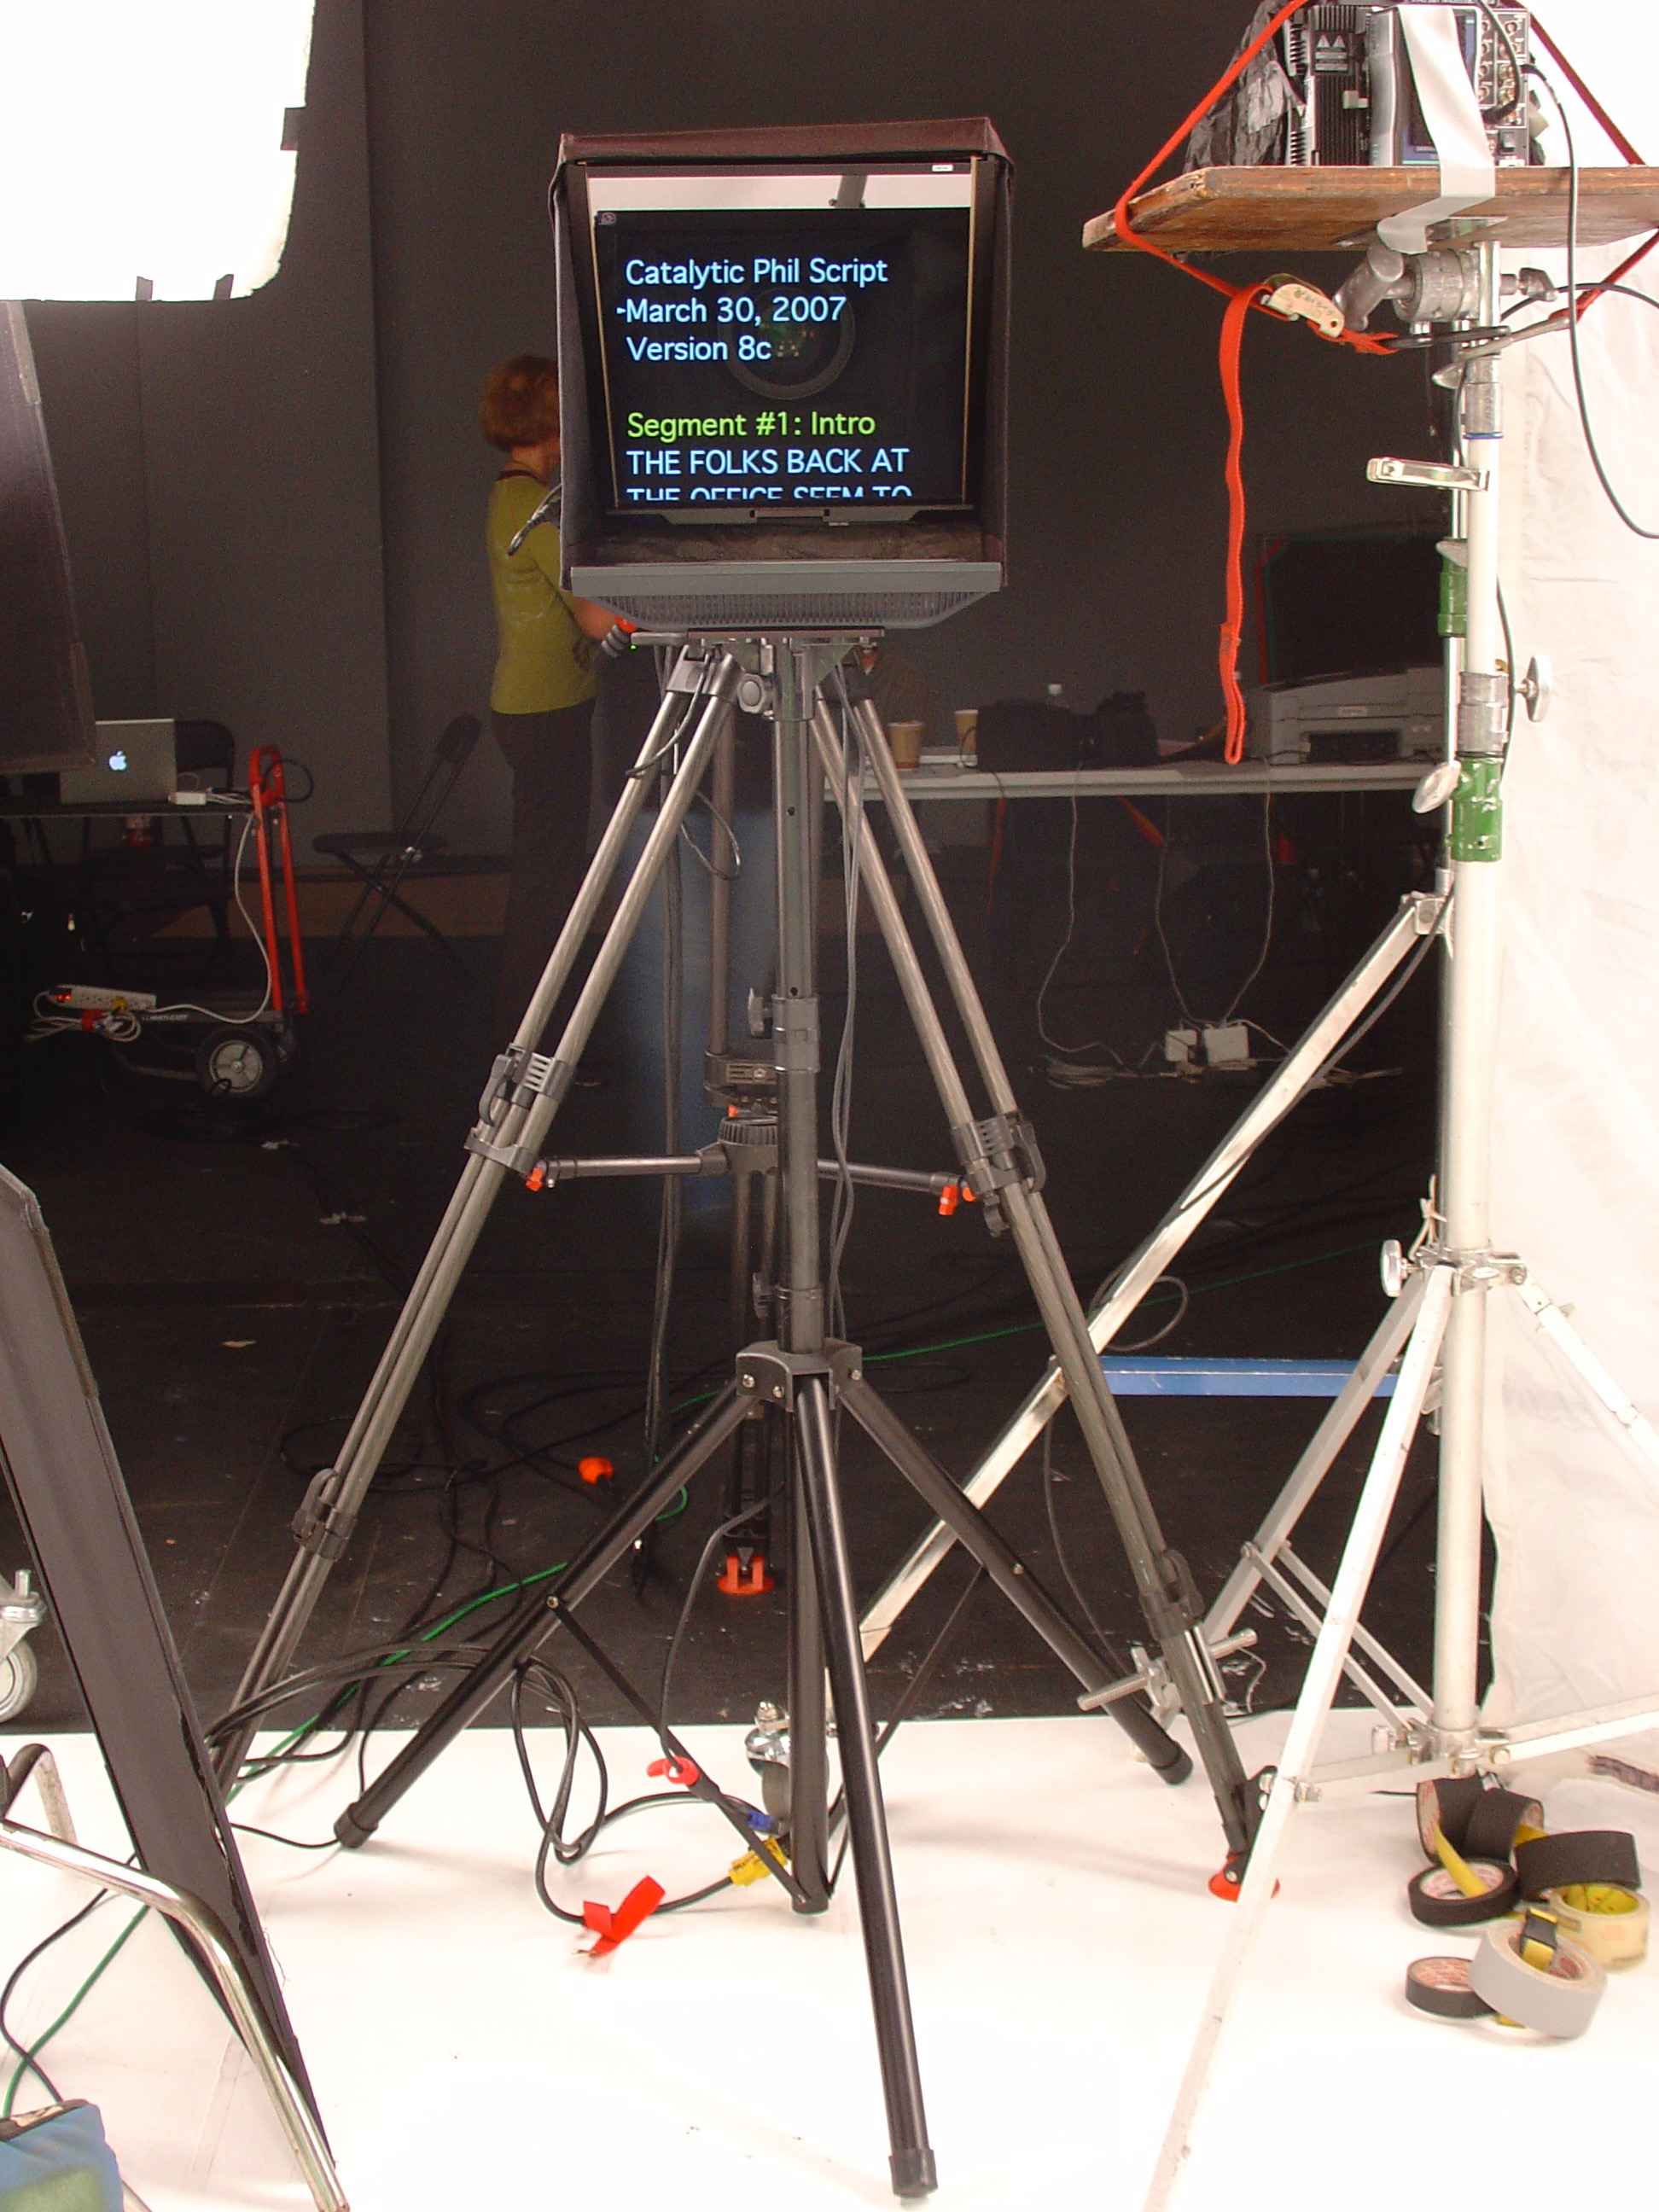 A freestanding teleprompter is not attached to the camera